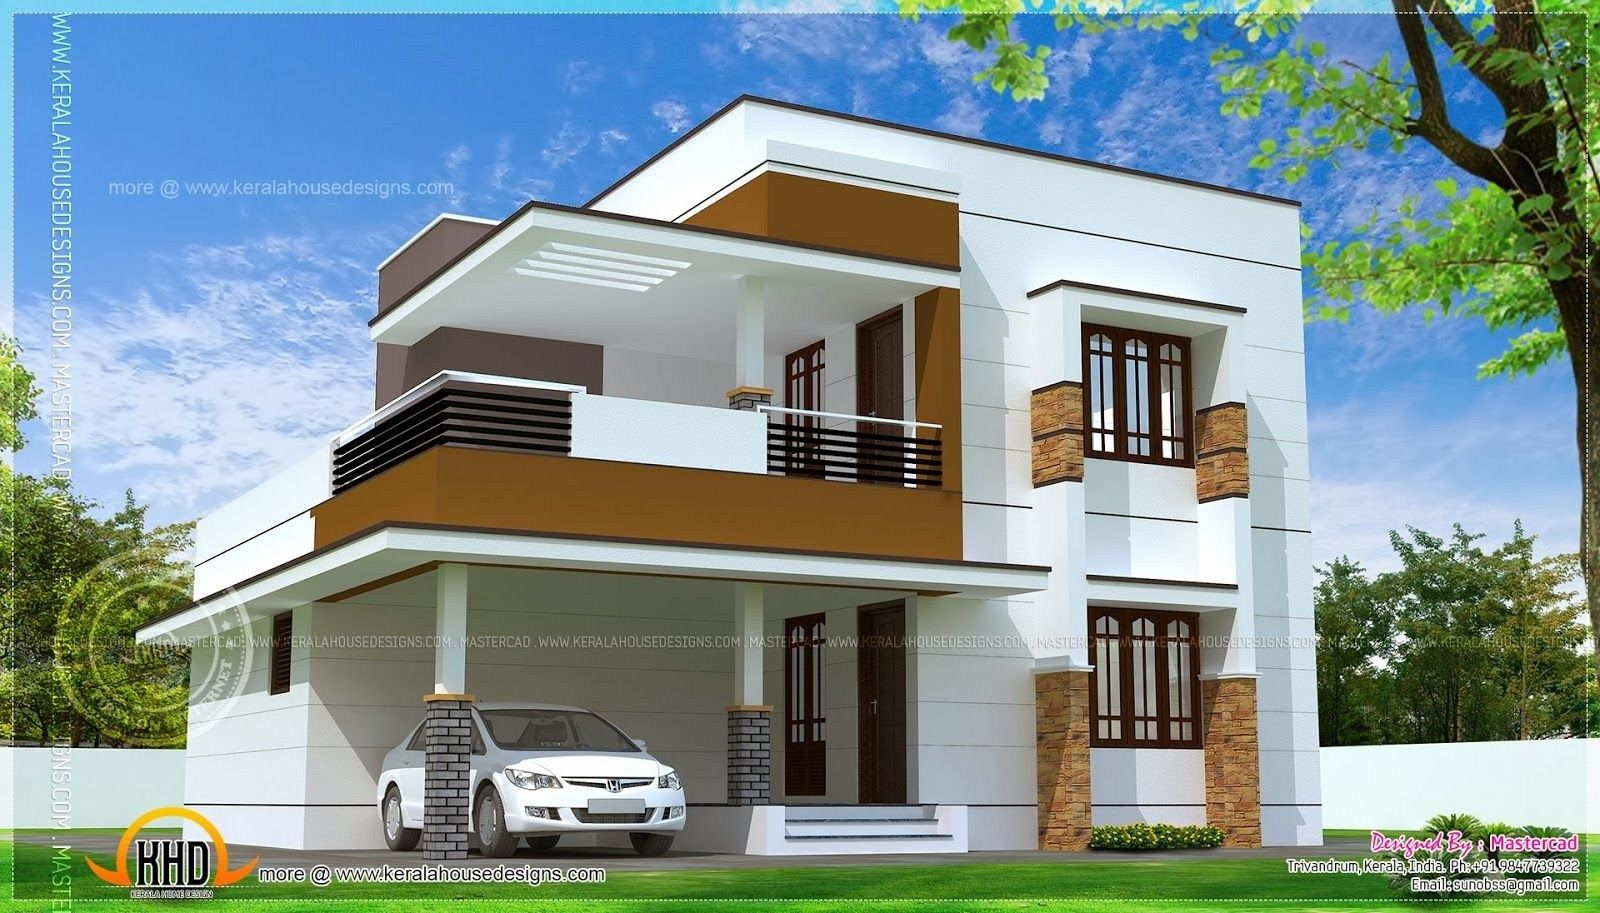 35 Charming Modern Homes Design In 2020 Kerala House Design Simple House Design Modern House Plans